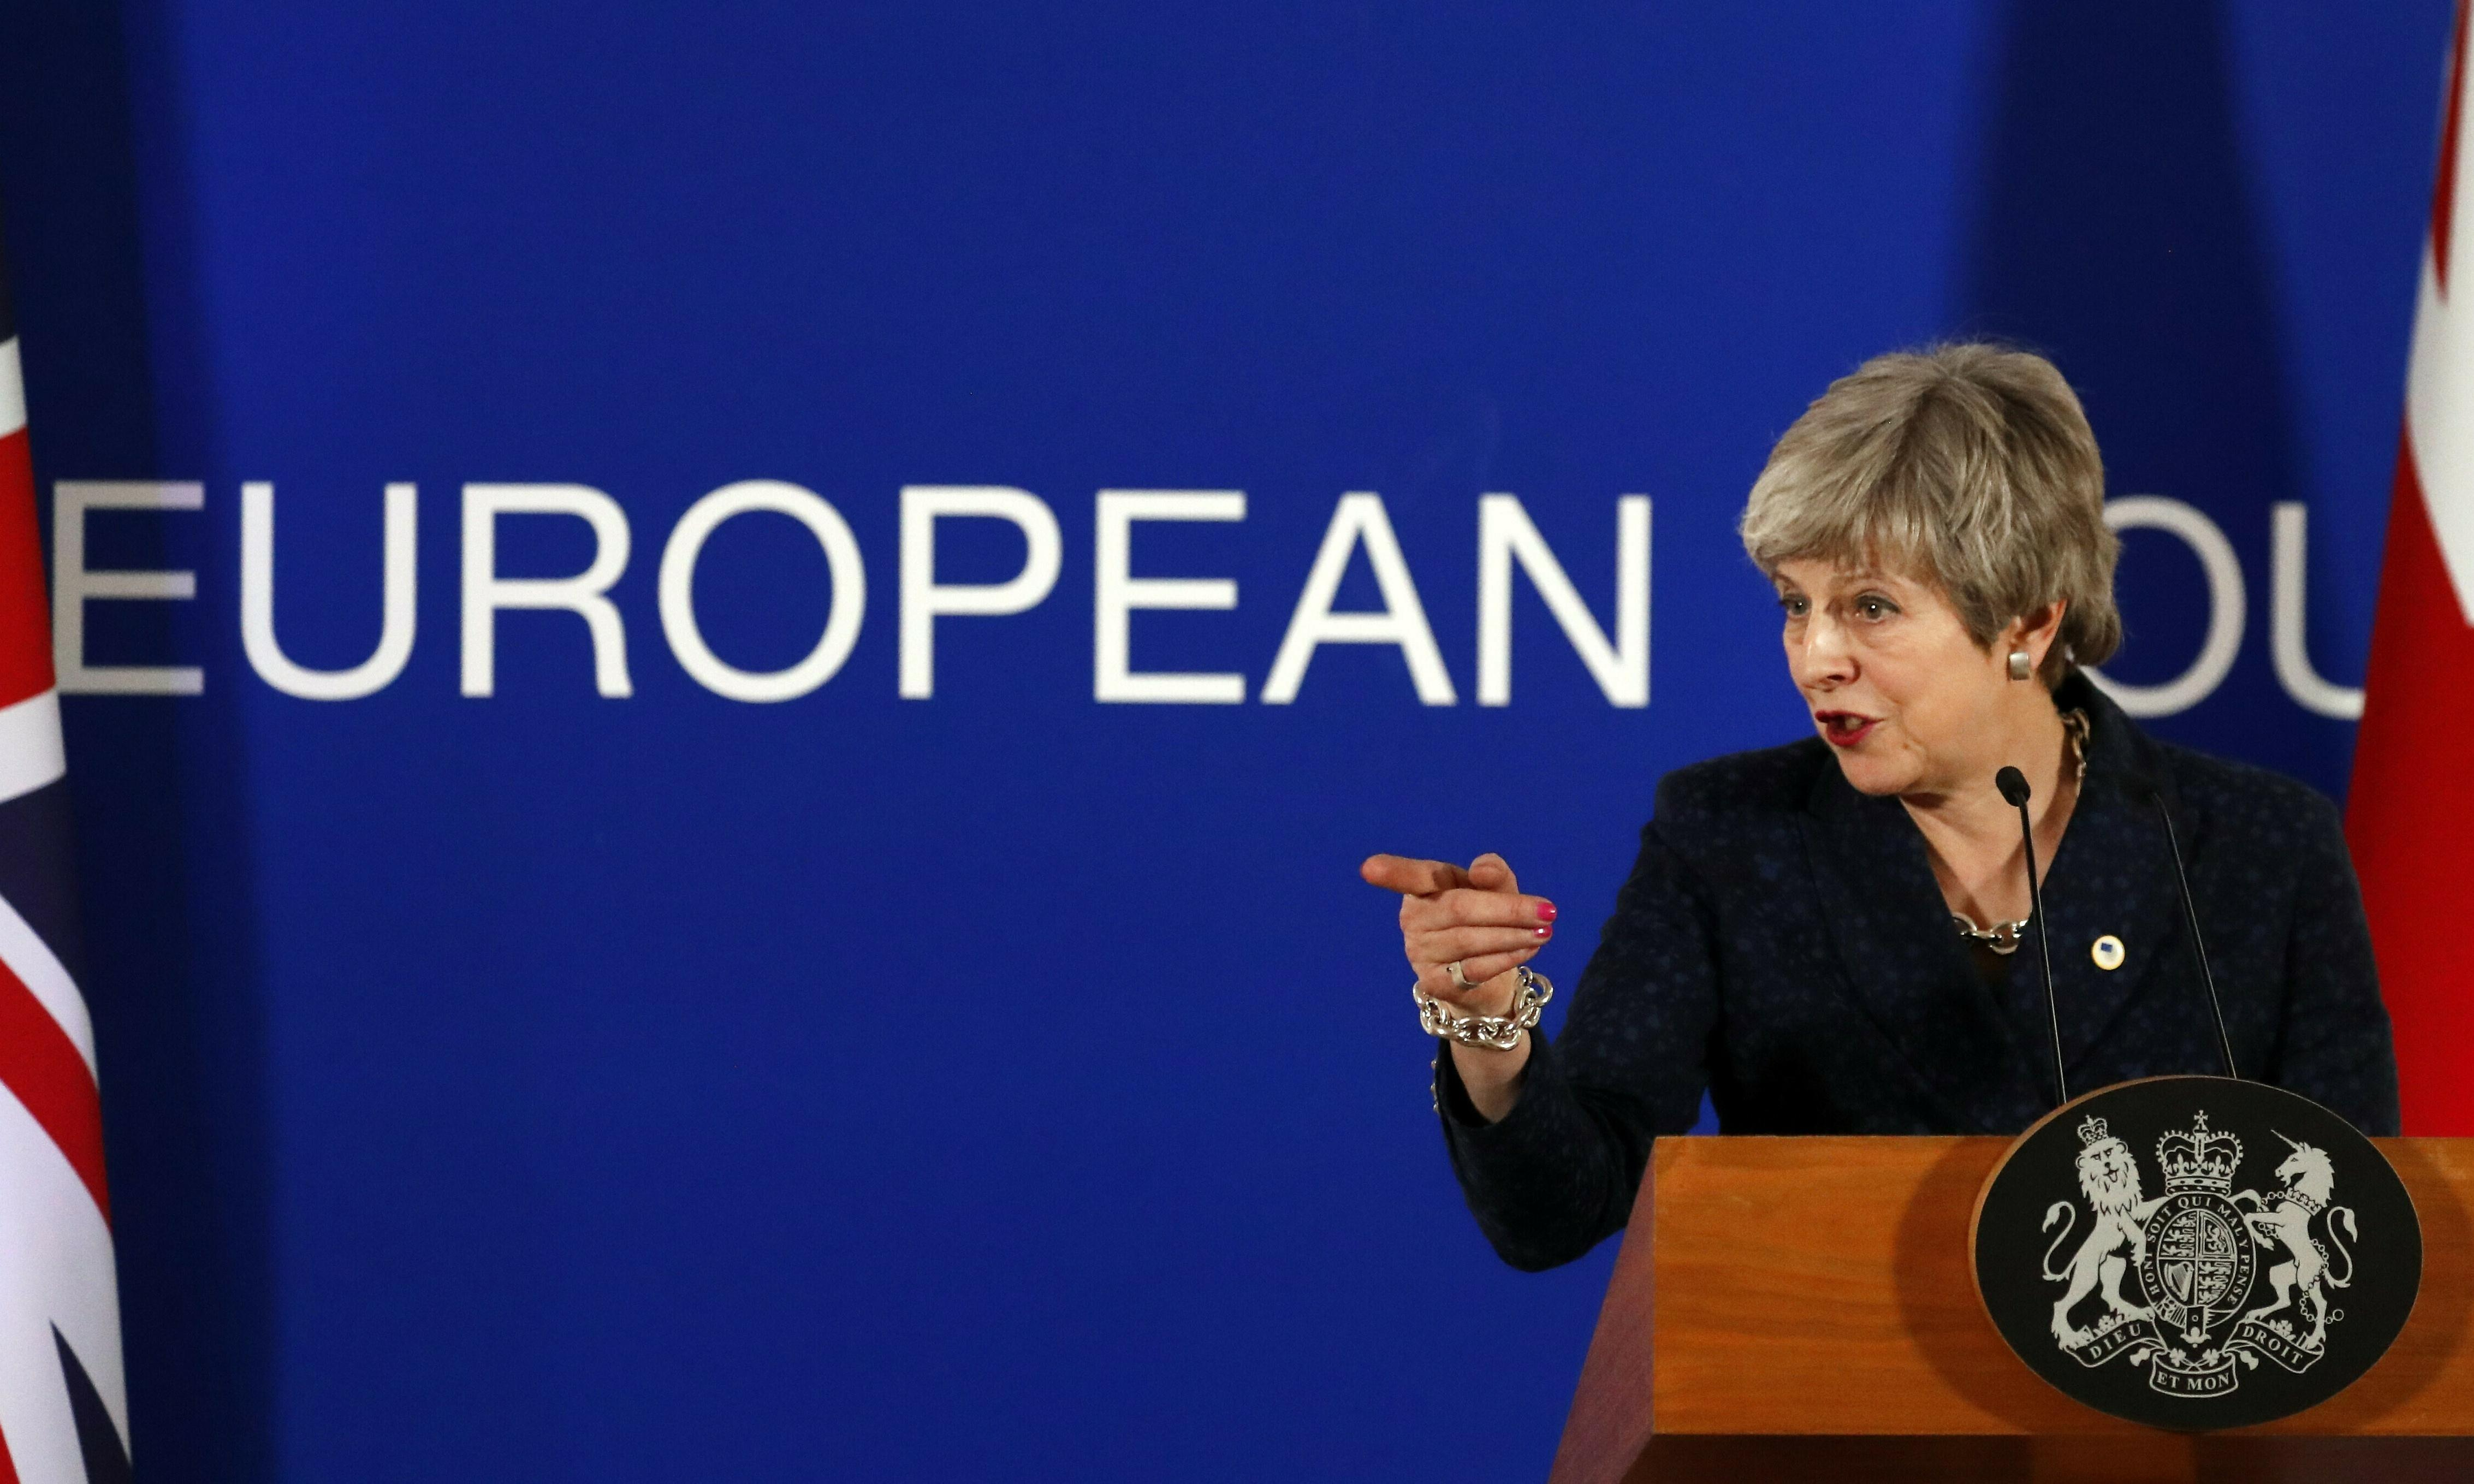 Why is Theresa May blaming everyone else for Brexit chaos? Projection